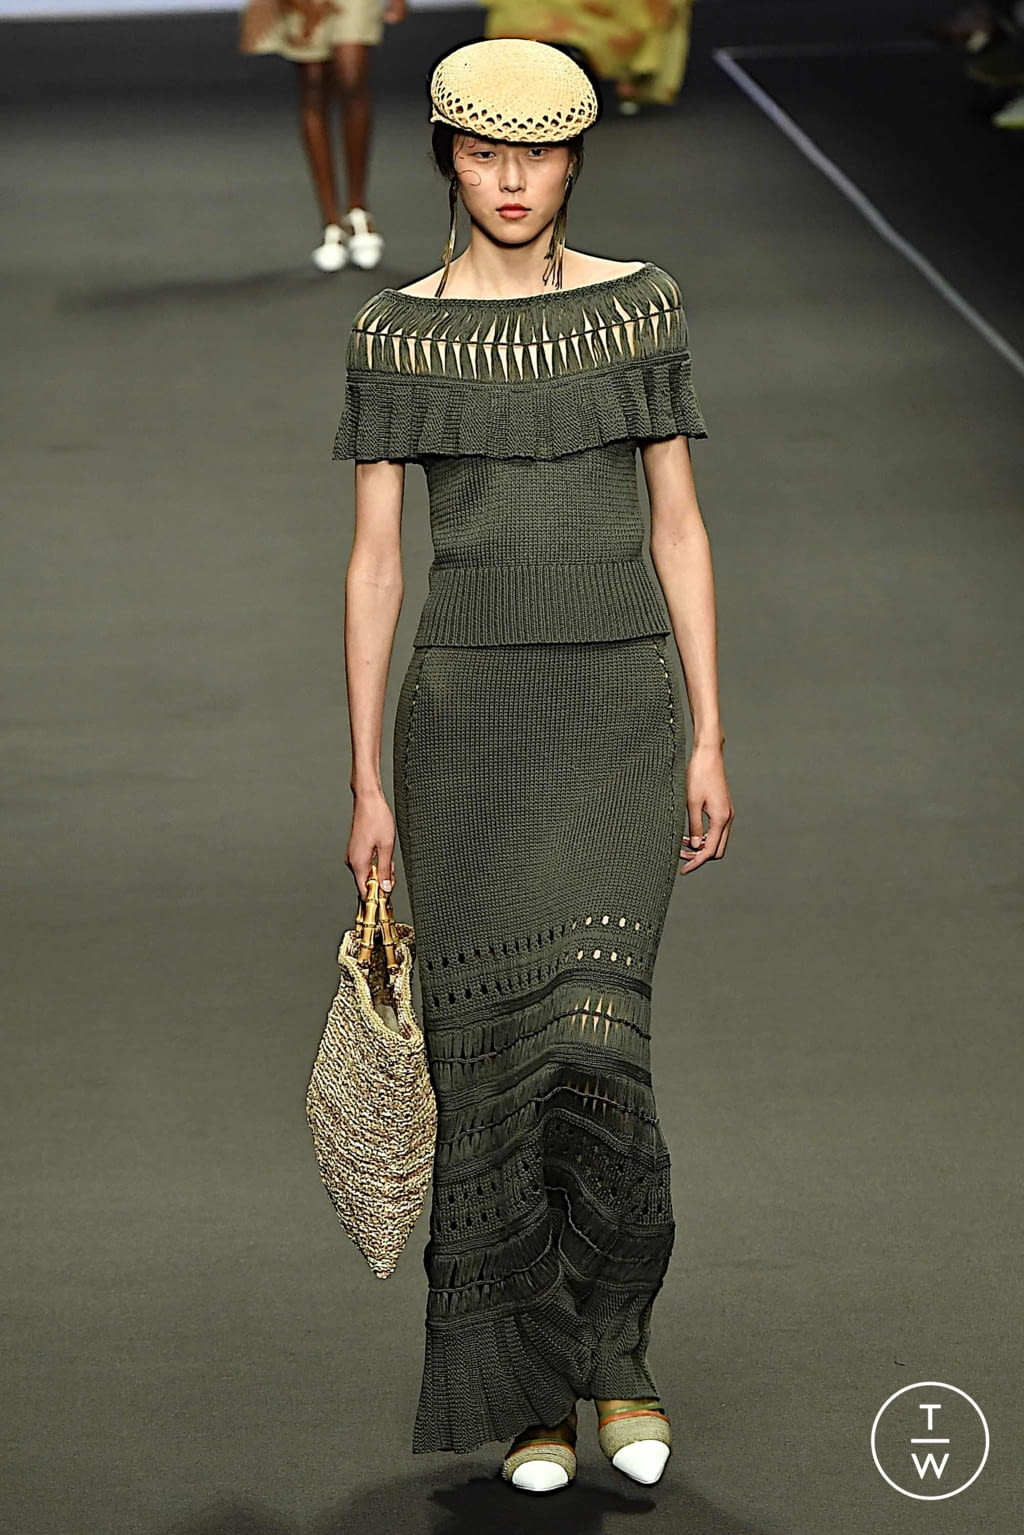 Fashion Week Milan Spring/Summer 2020 look 14 from the Anteprima collection 女装